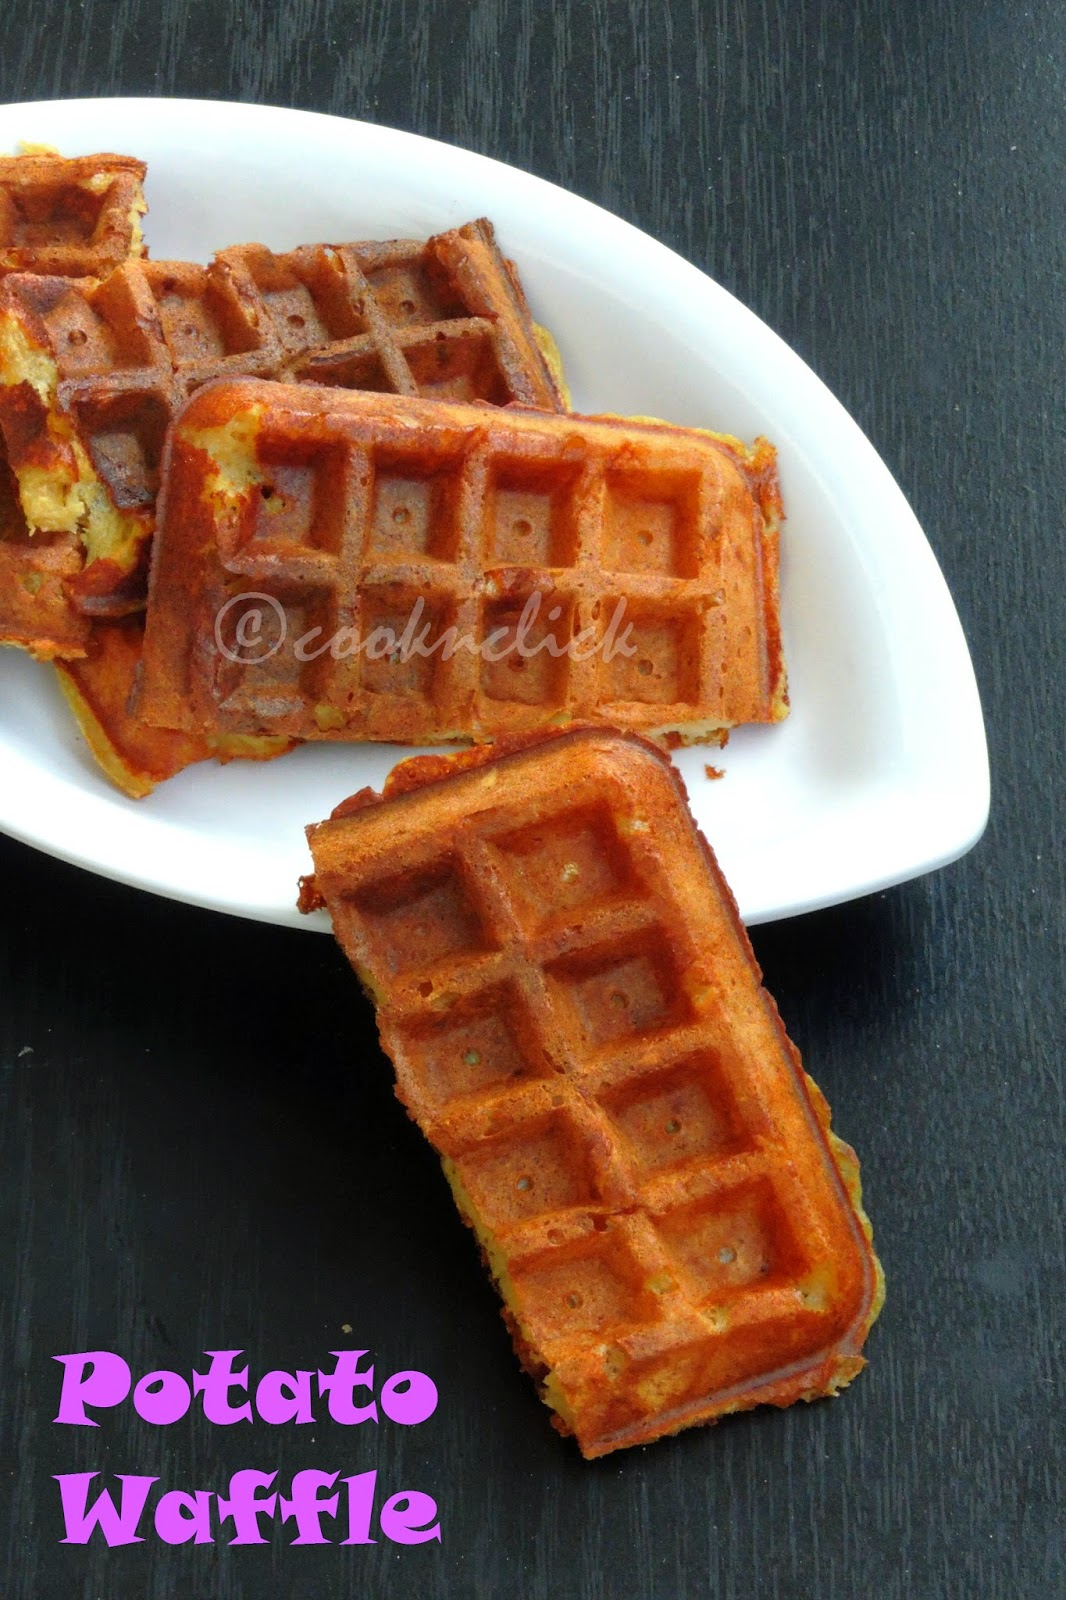 Waffles with mashed potatoes